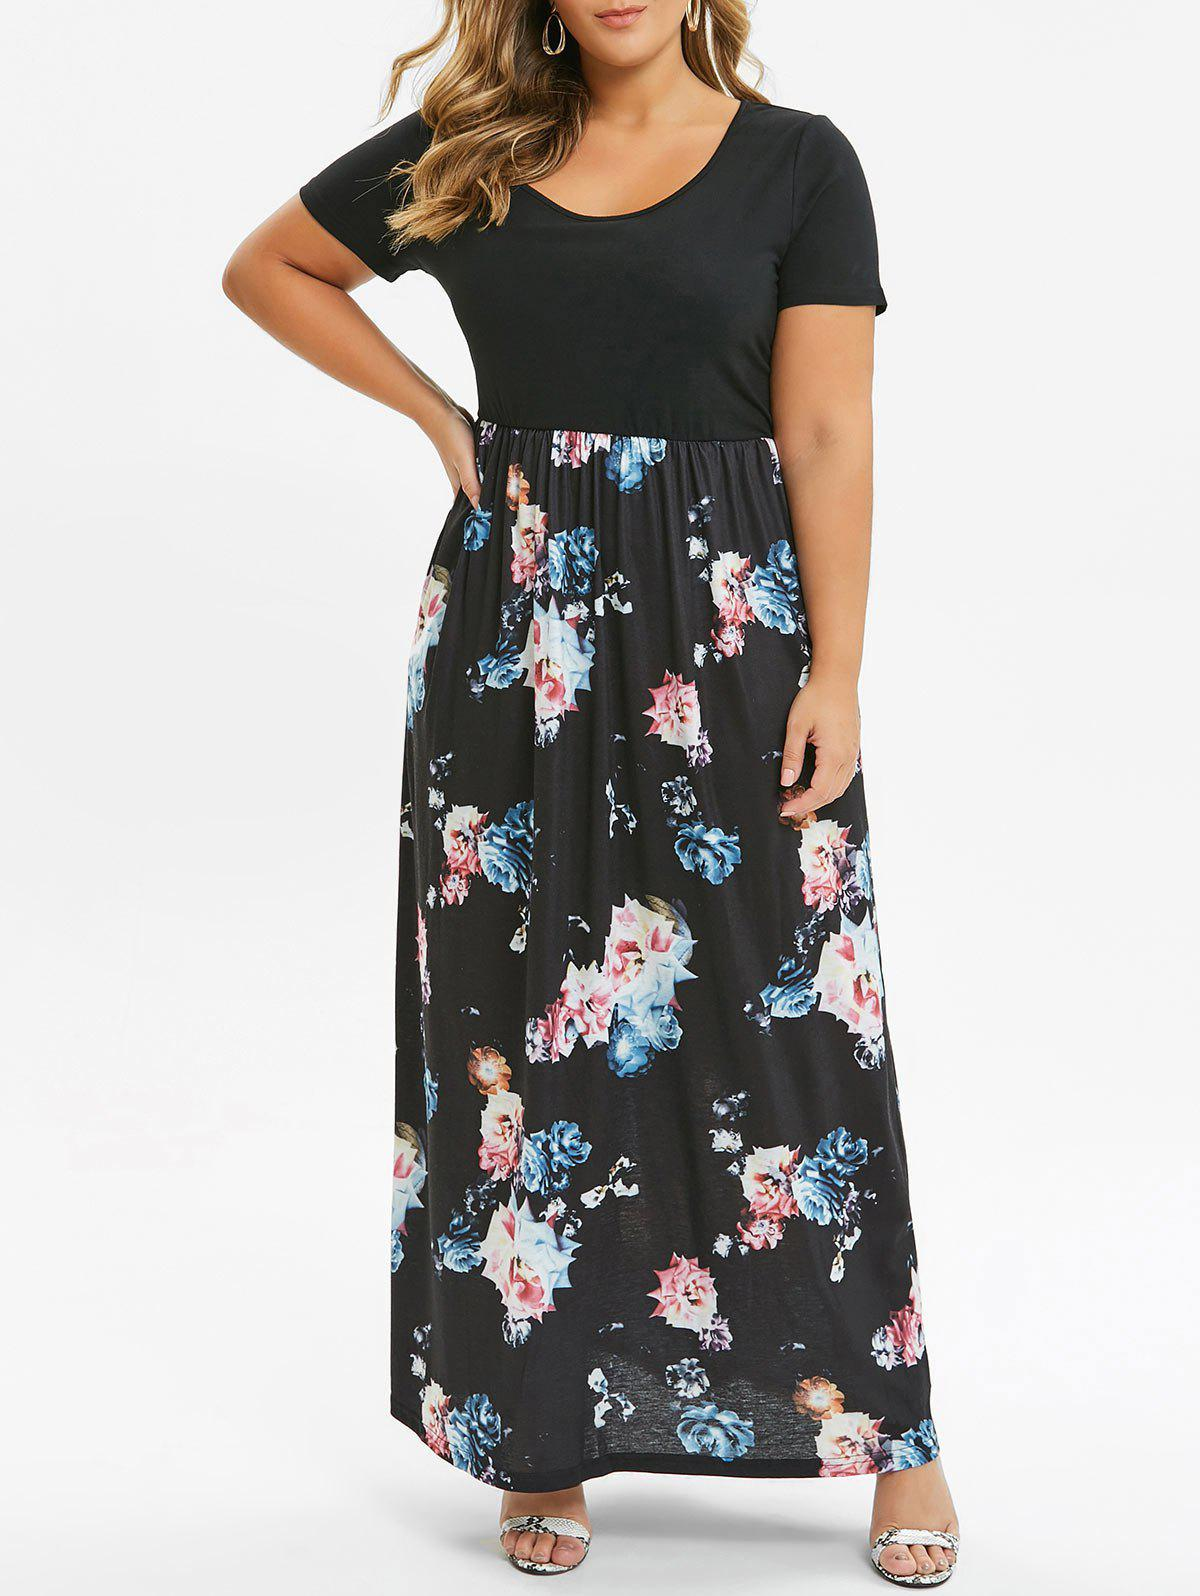 36% OFF] Contrast Pockets Maxi Floral Plus Size Dress | Rosegal